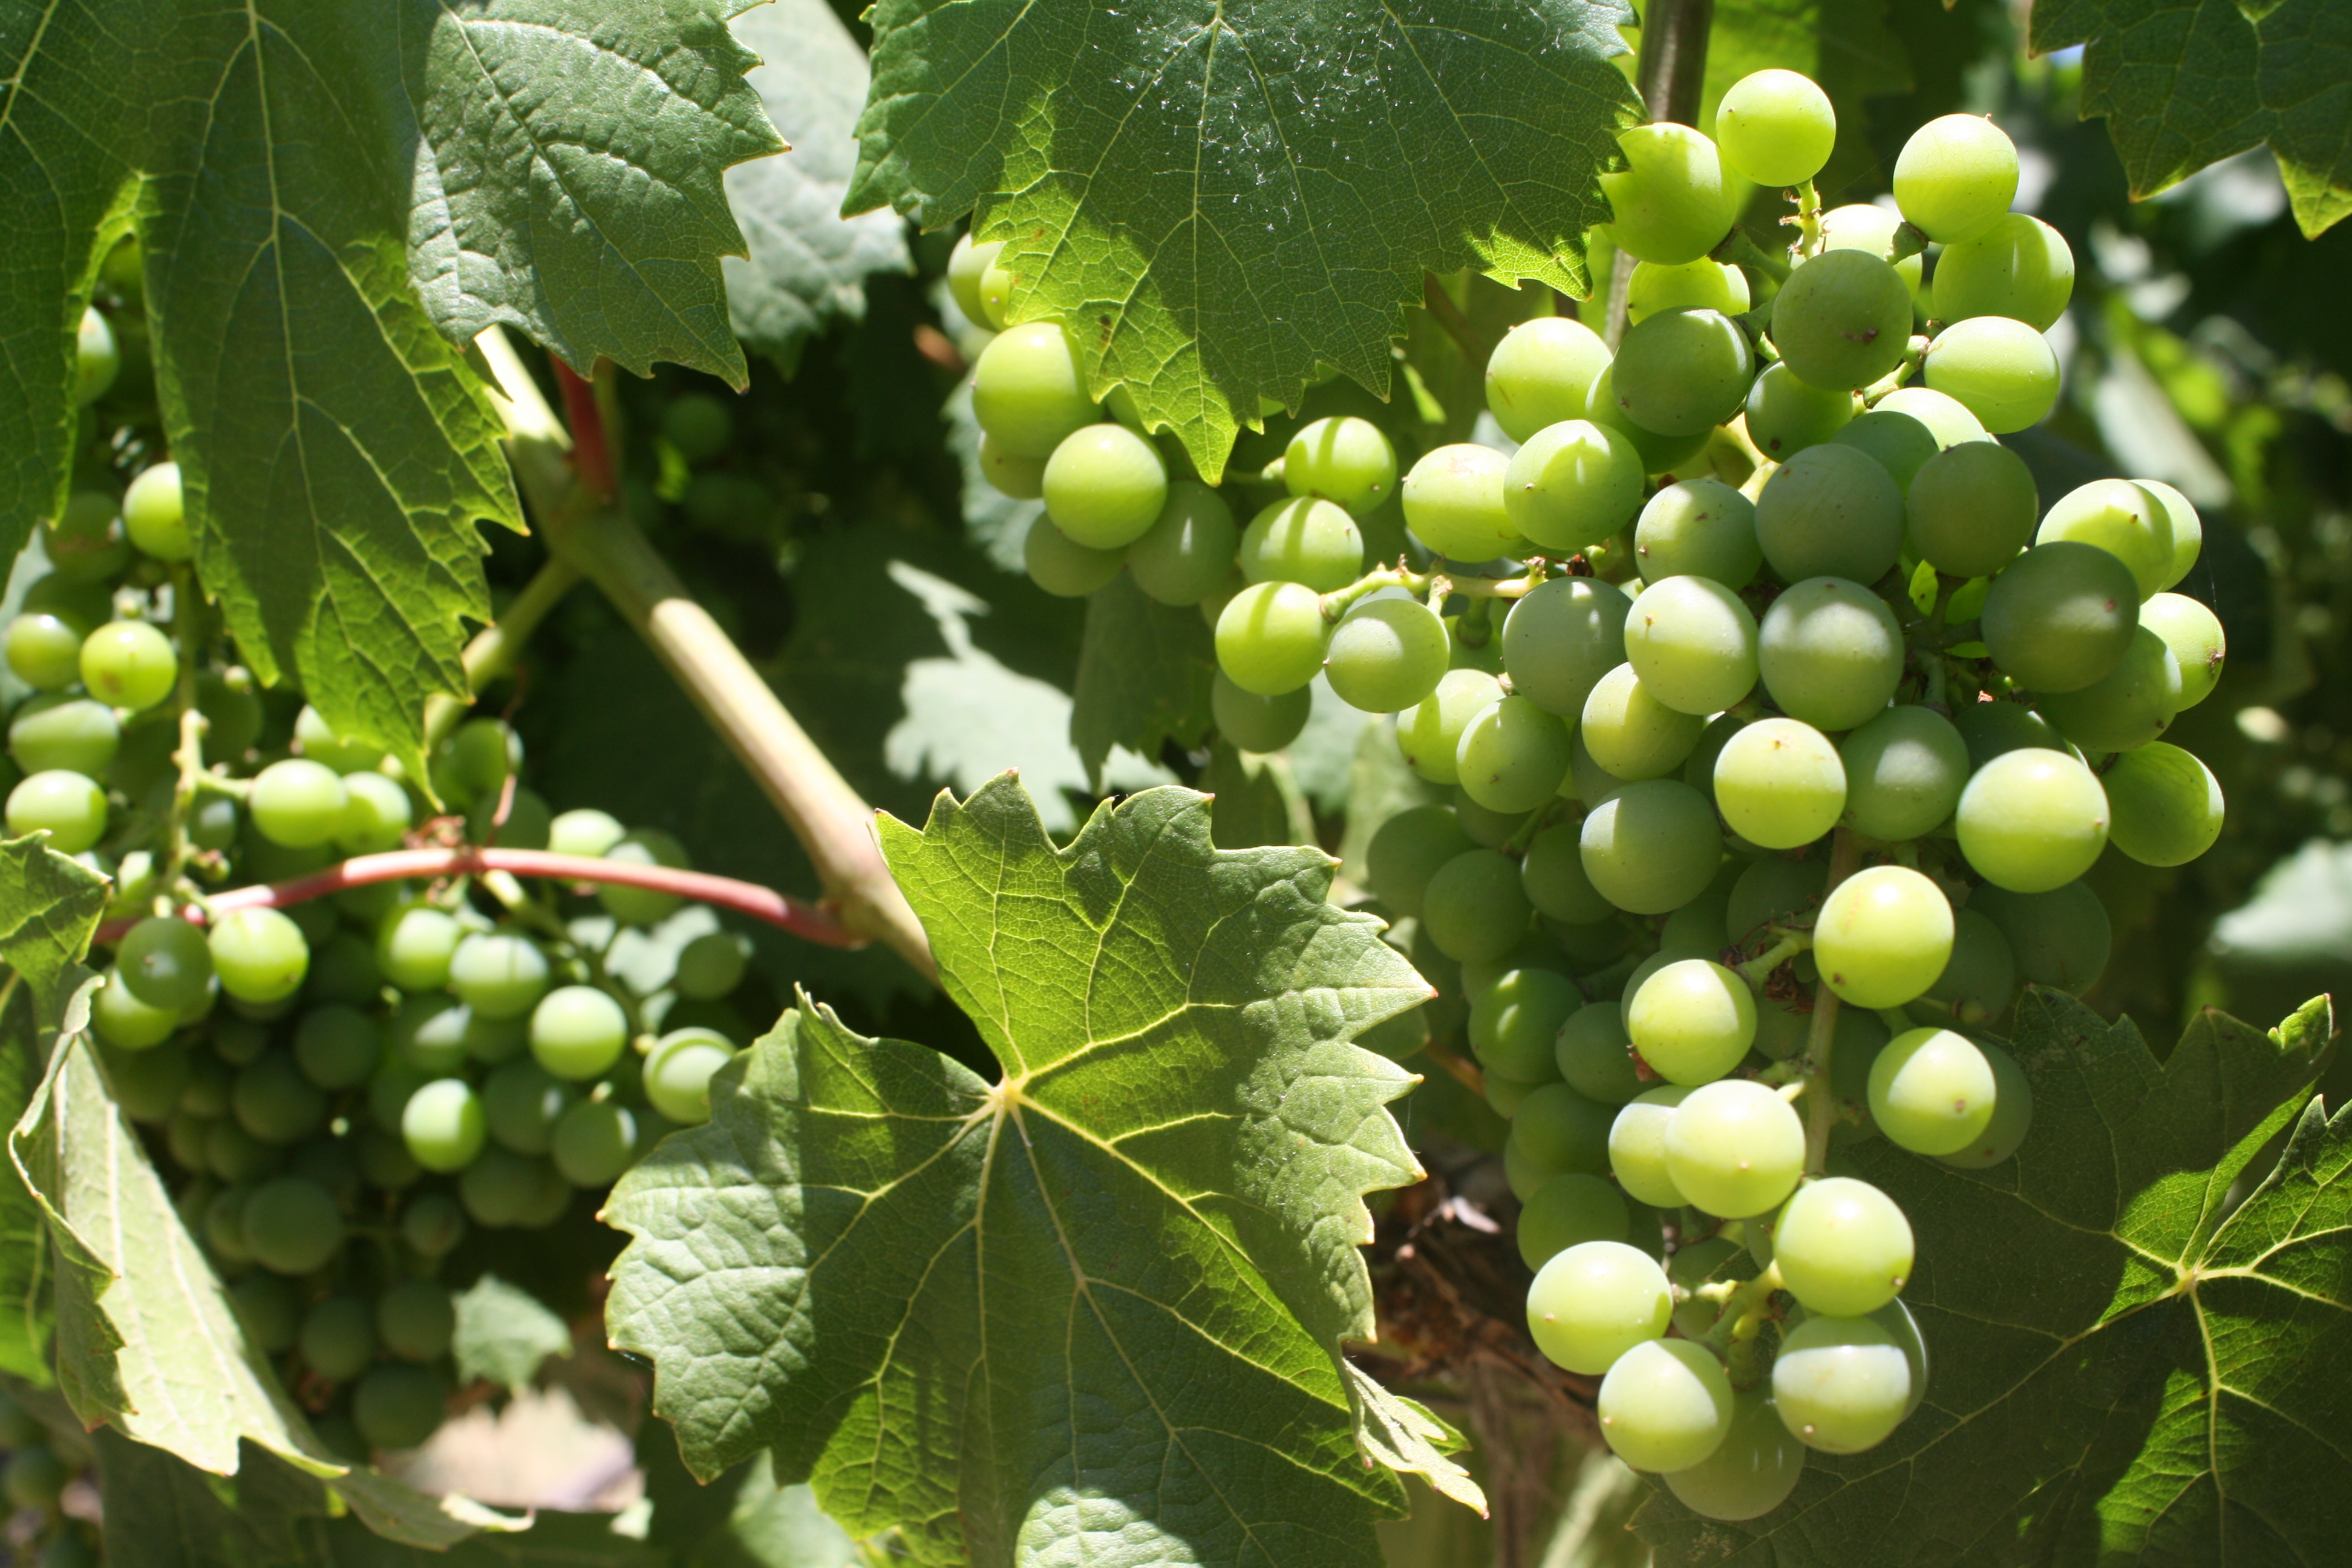 Close up of grapes and vines